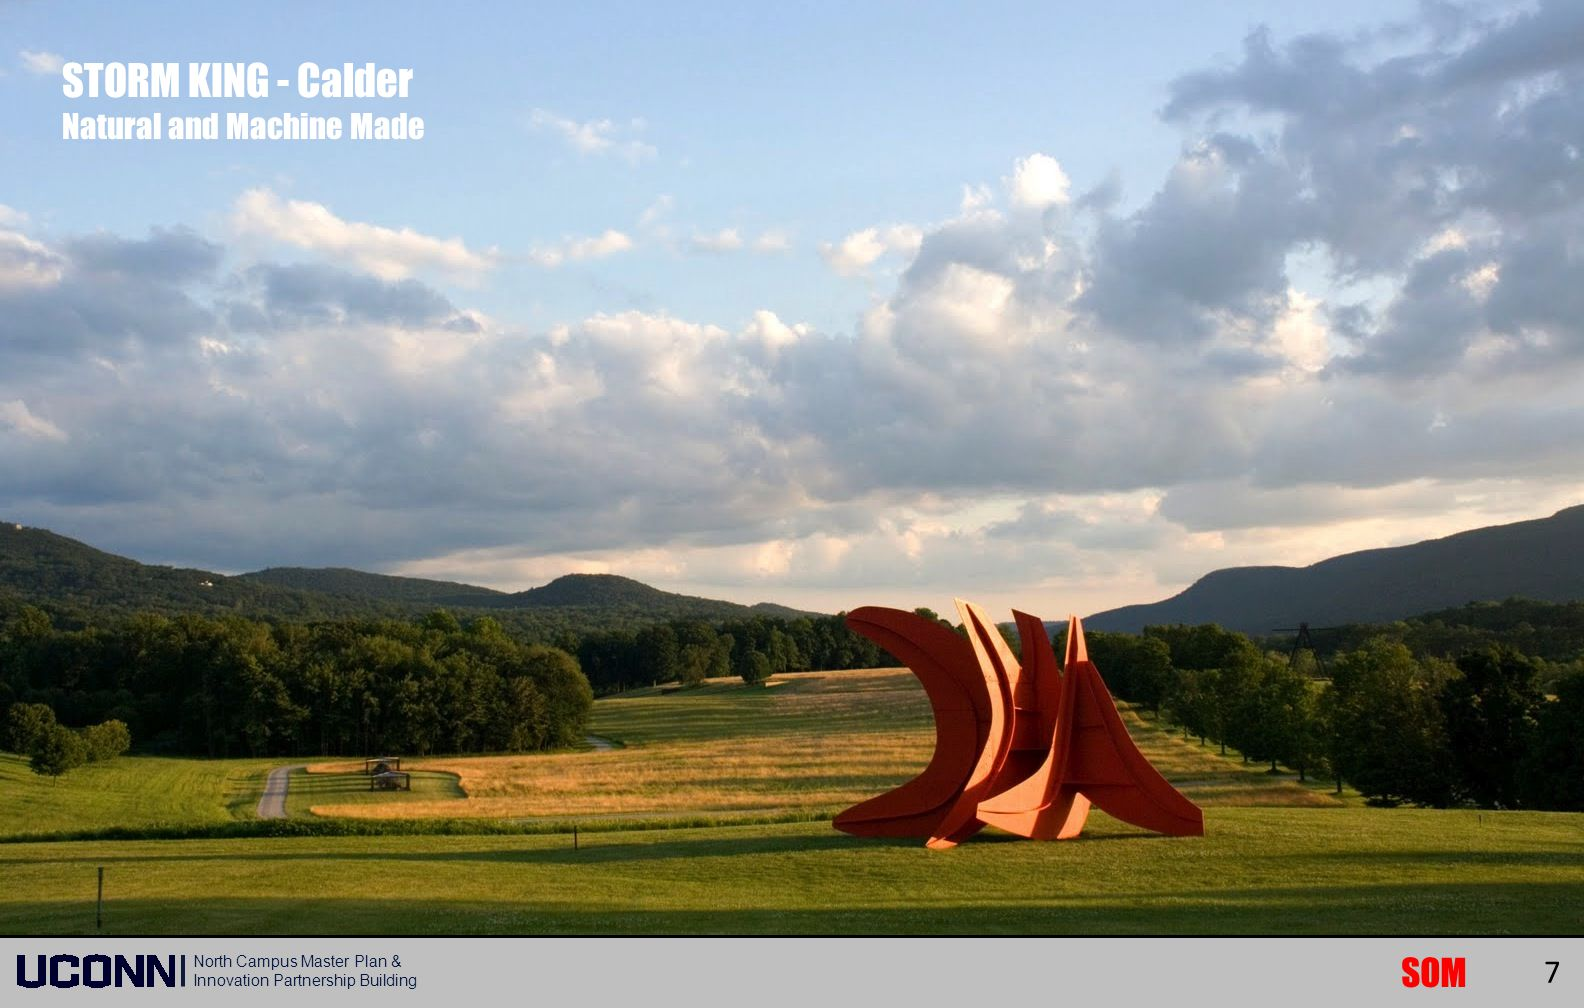 STORM KING - Calder Natural and Machine Made